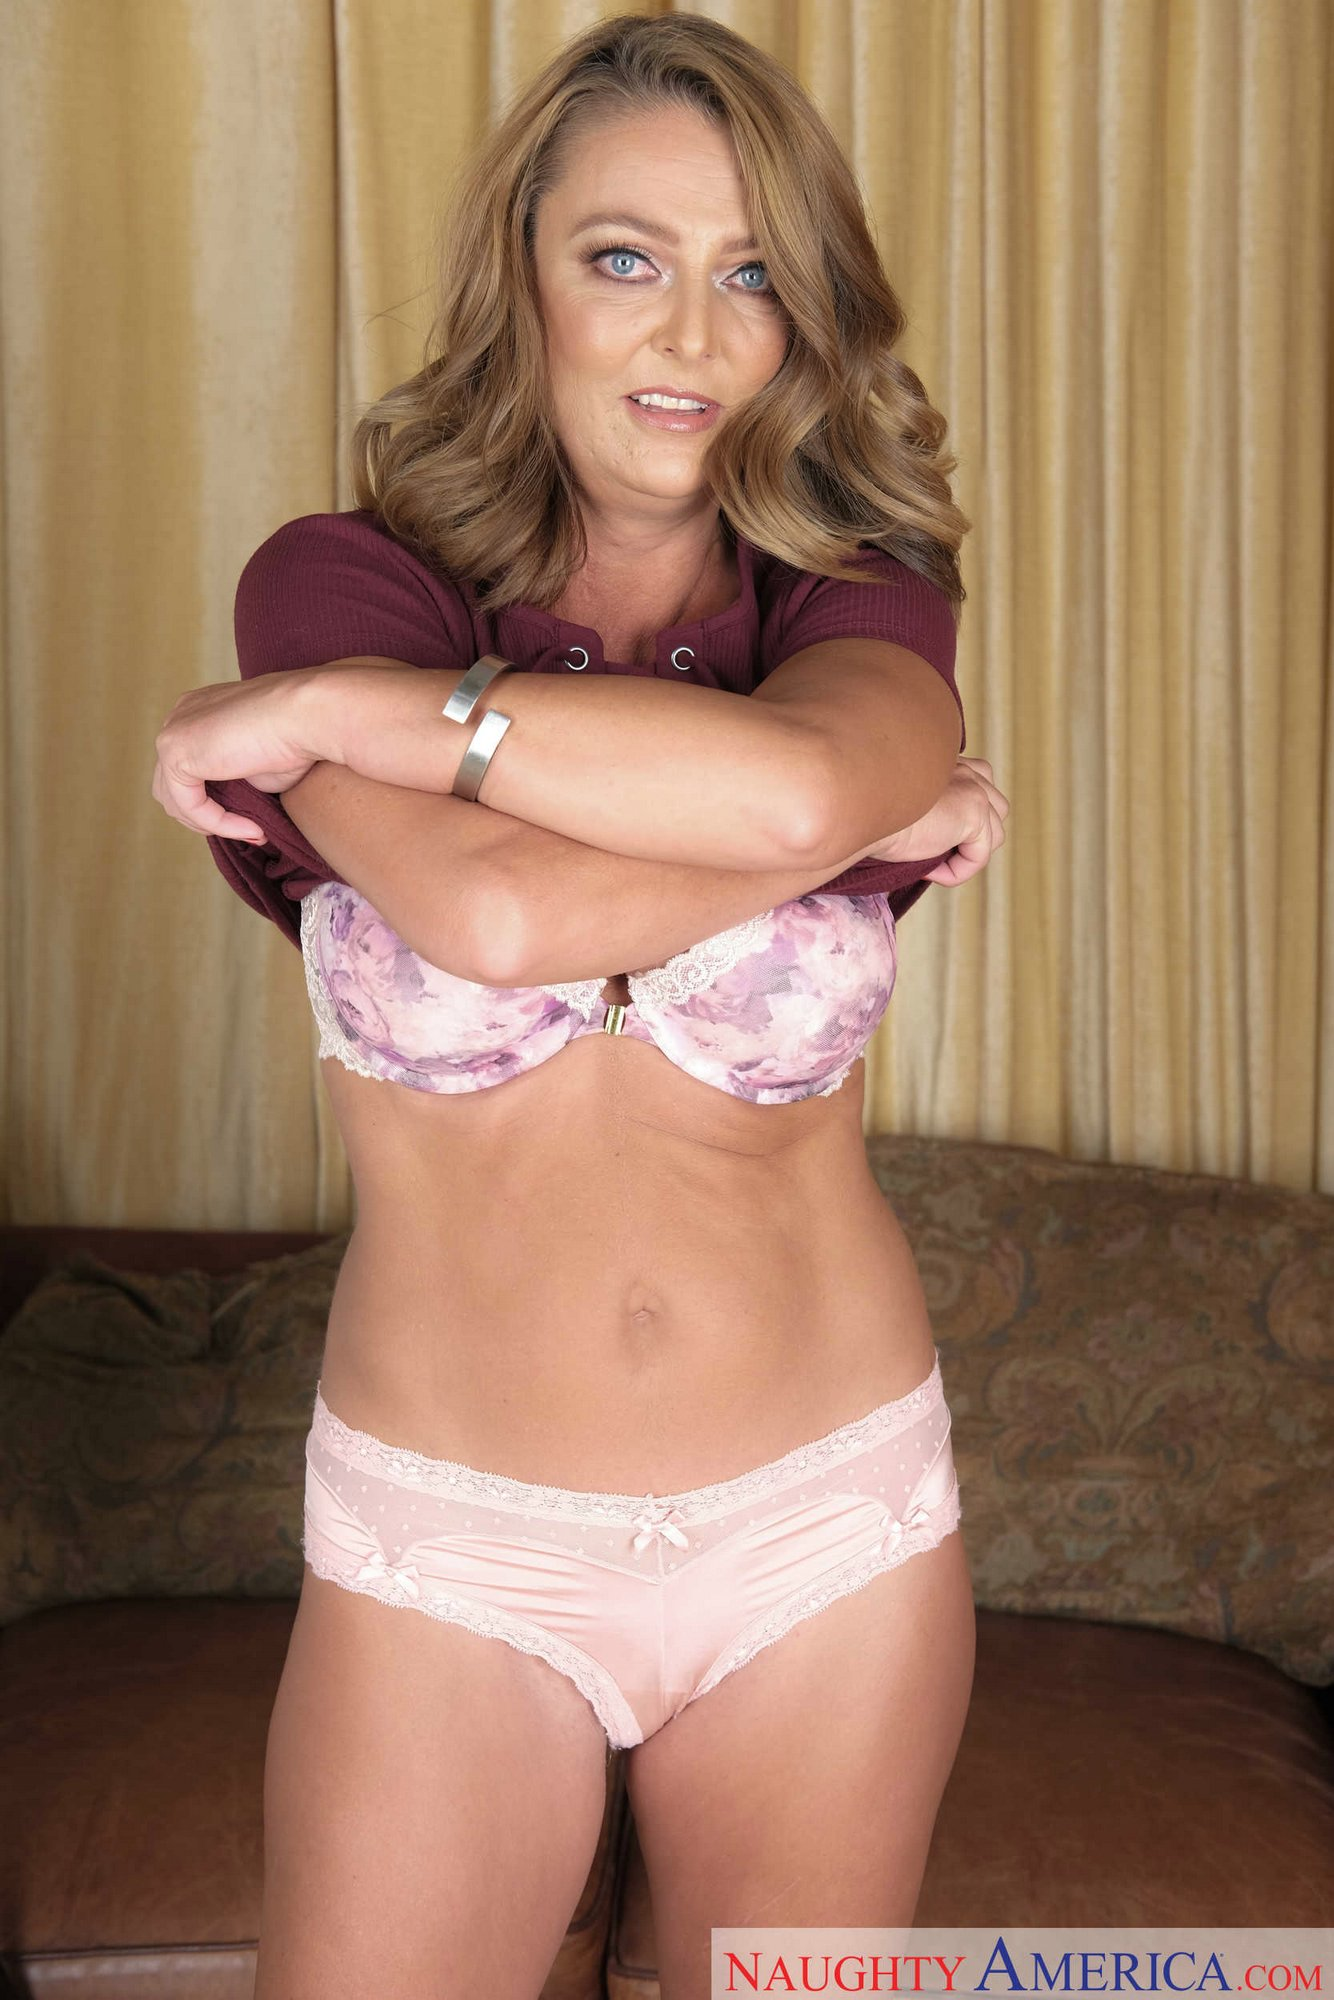 Brenda james milf the purpose